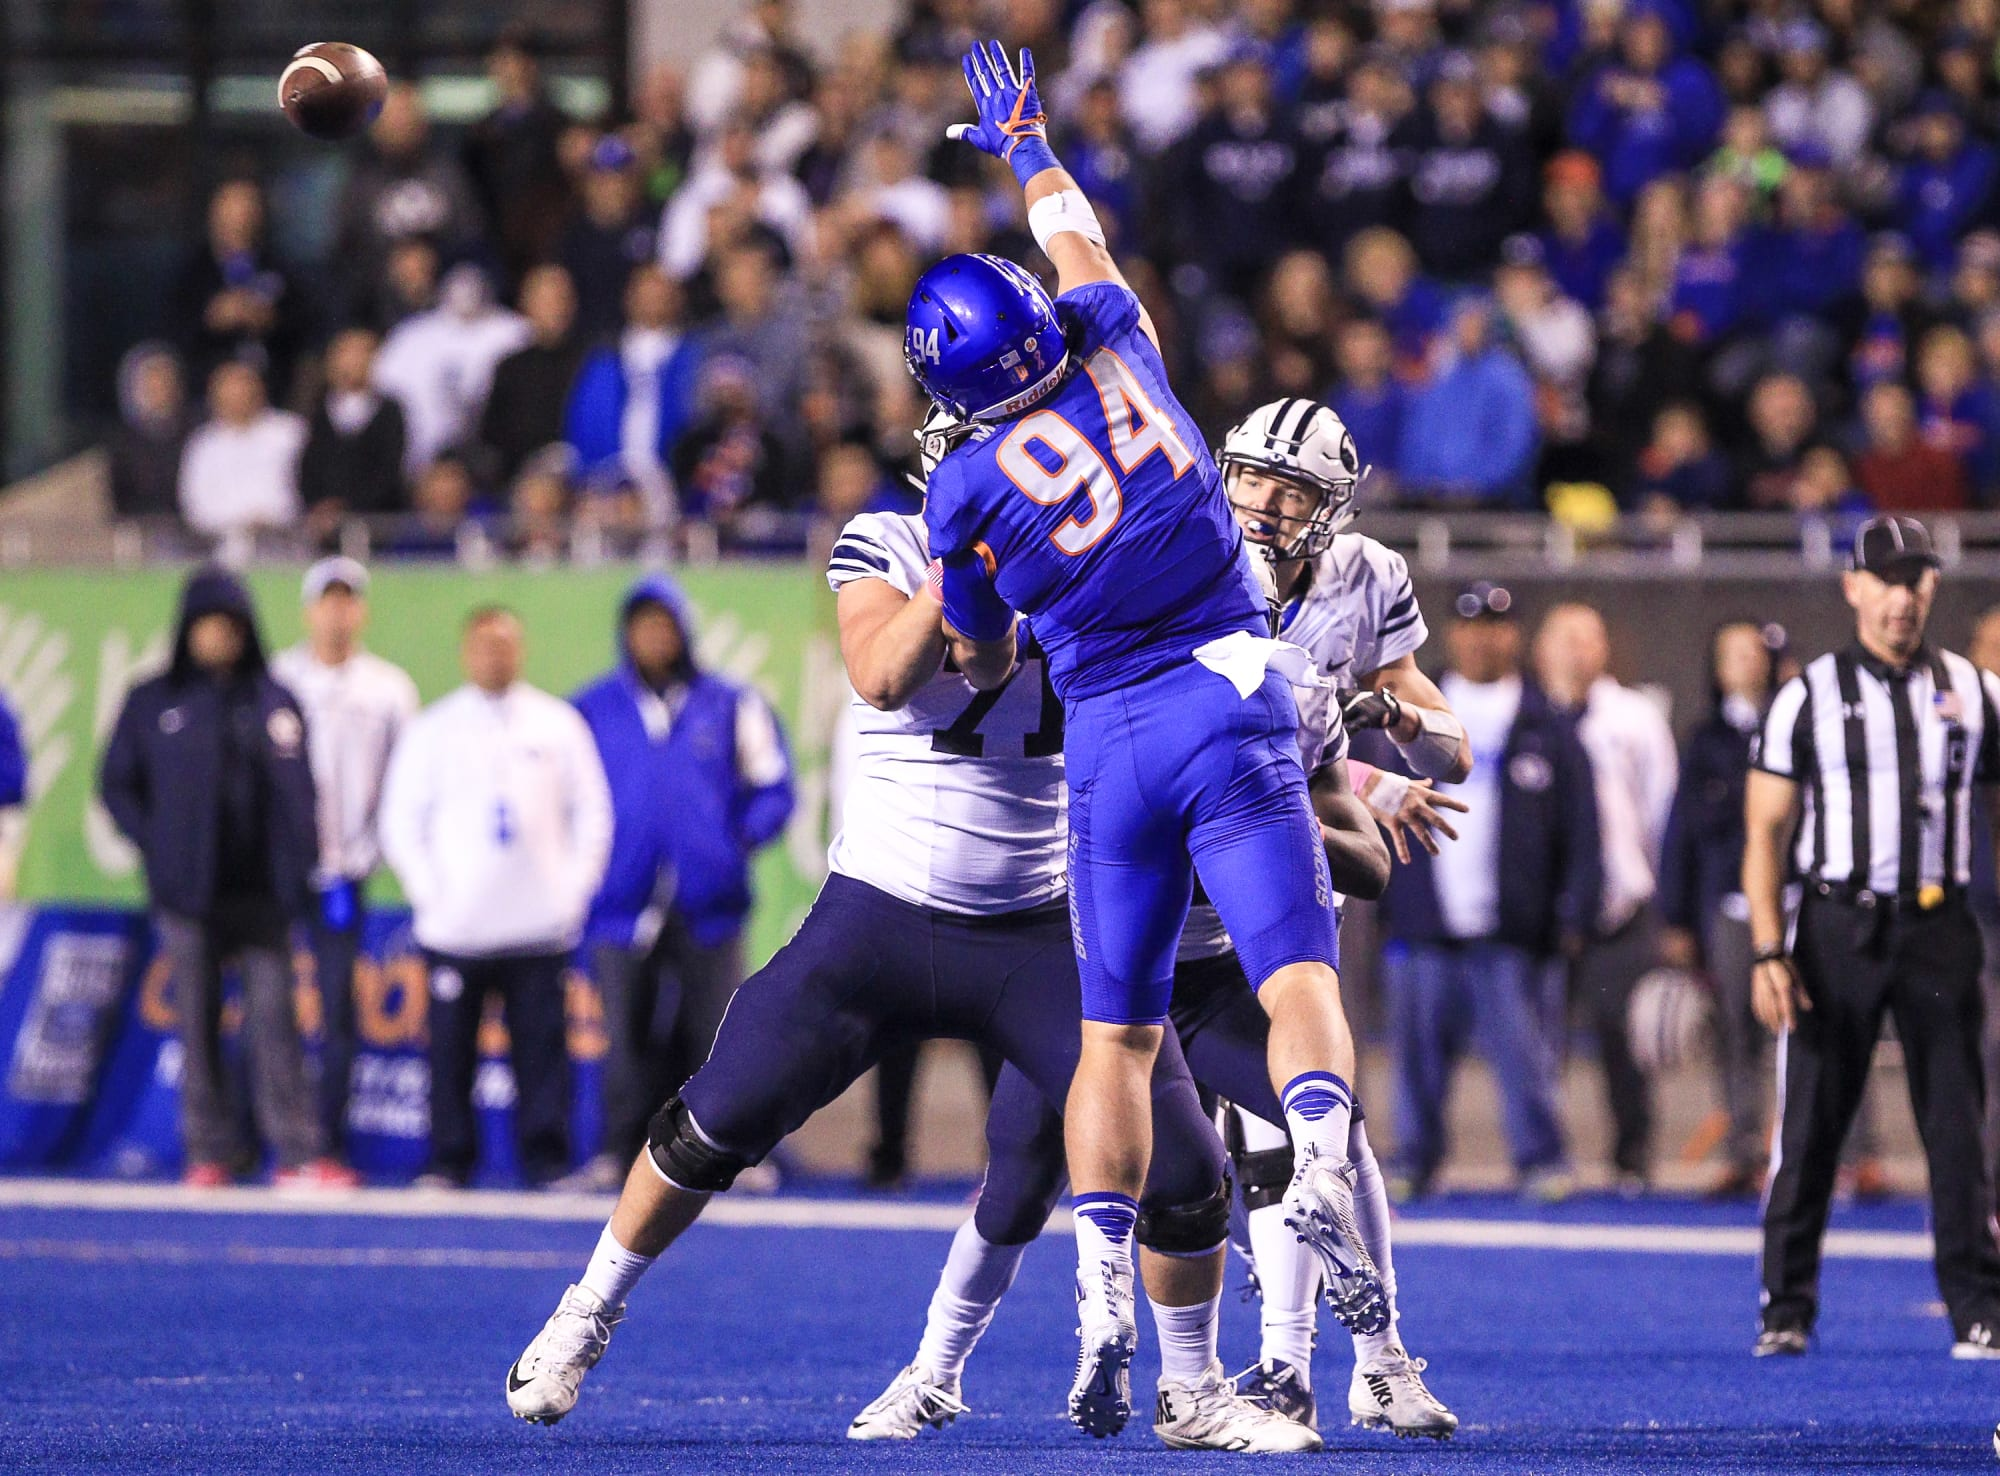 Takeaways from BYU Football's loss to Boise State